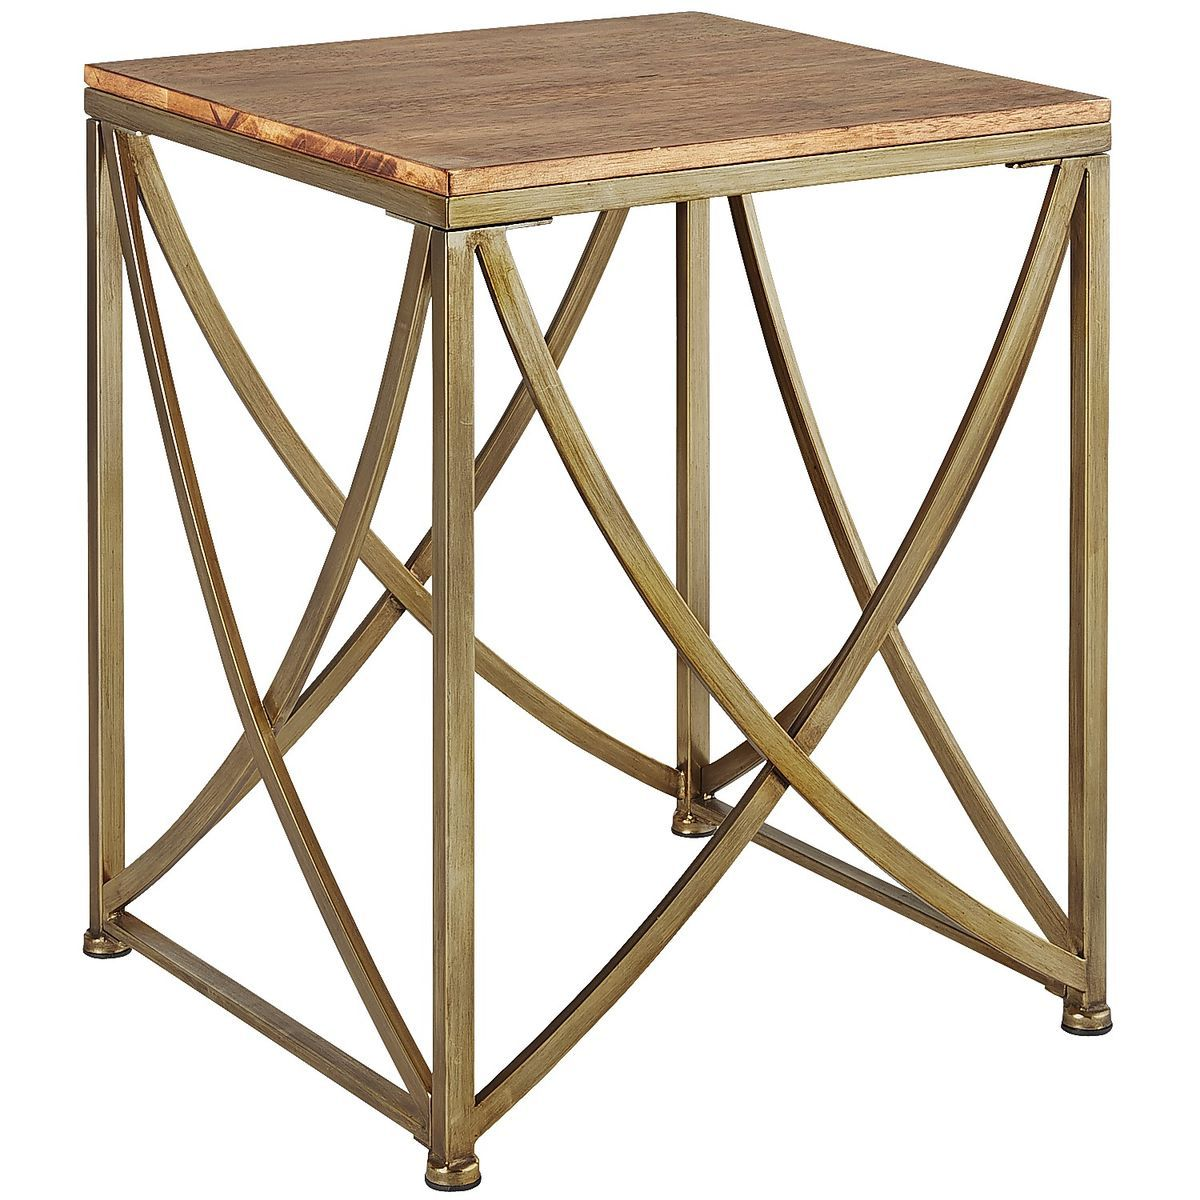 dakota modern end table pier imports living room accent tables bedside legs circular glass side round skirts decorator wine rack small dresser lamps dining placemats threshold